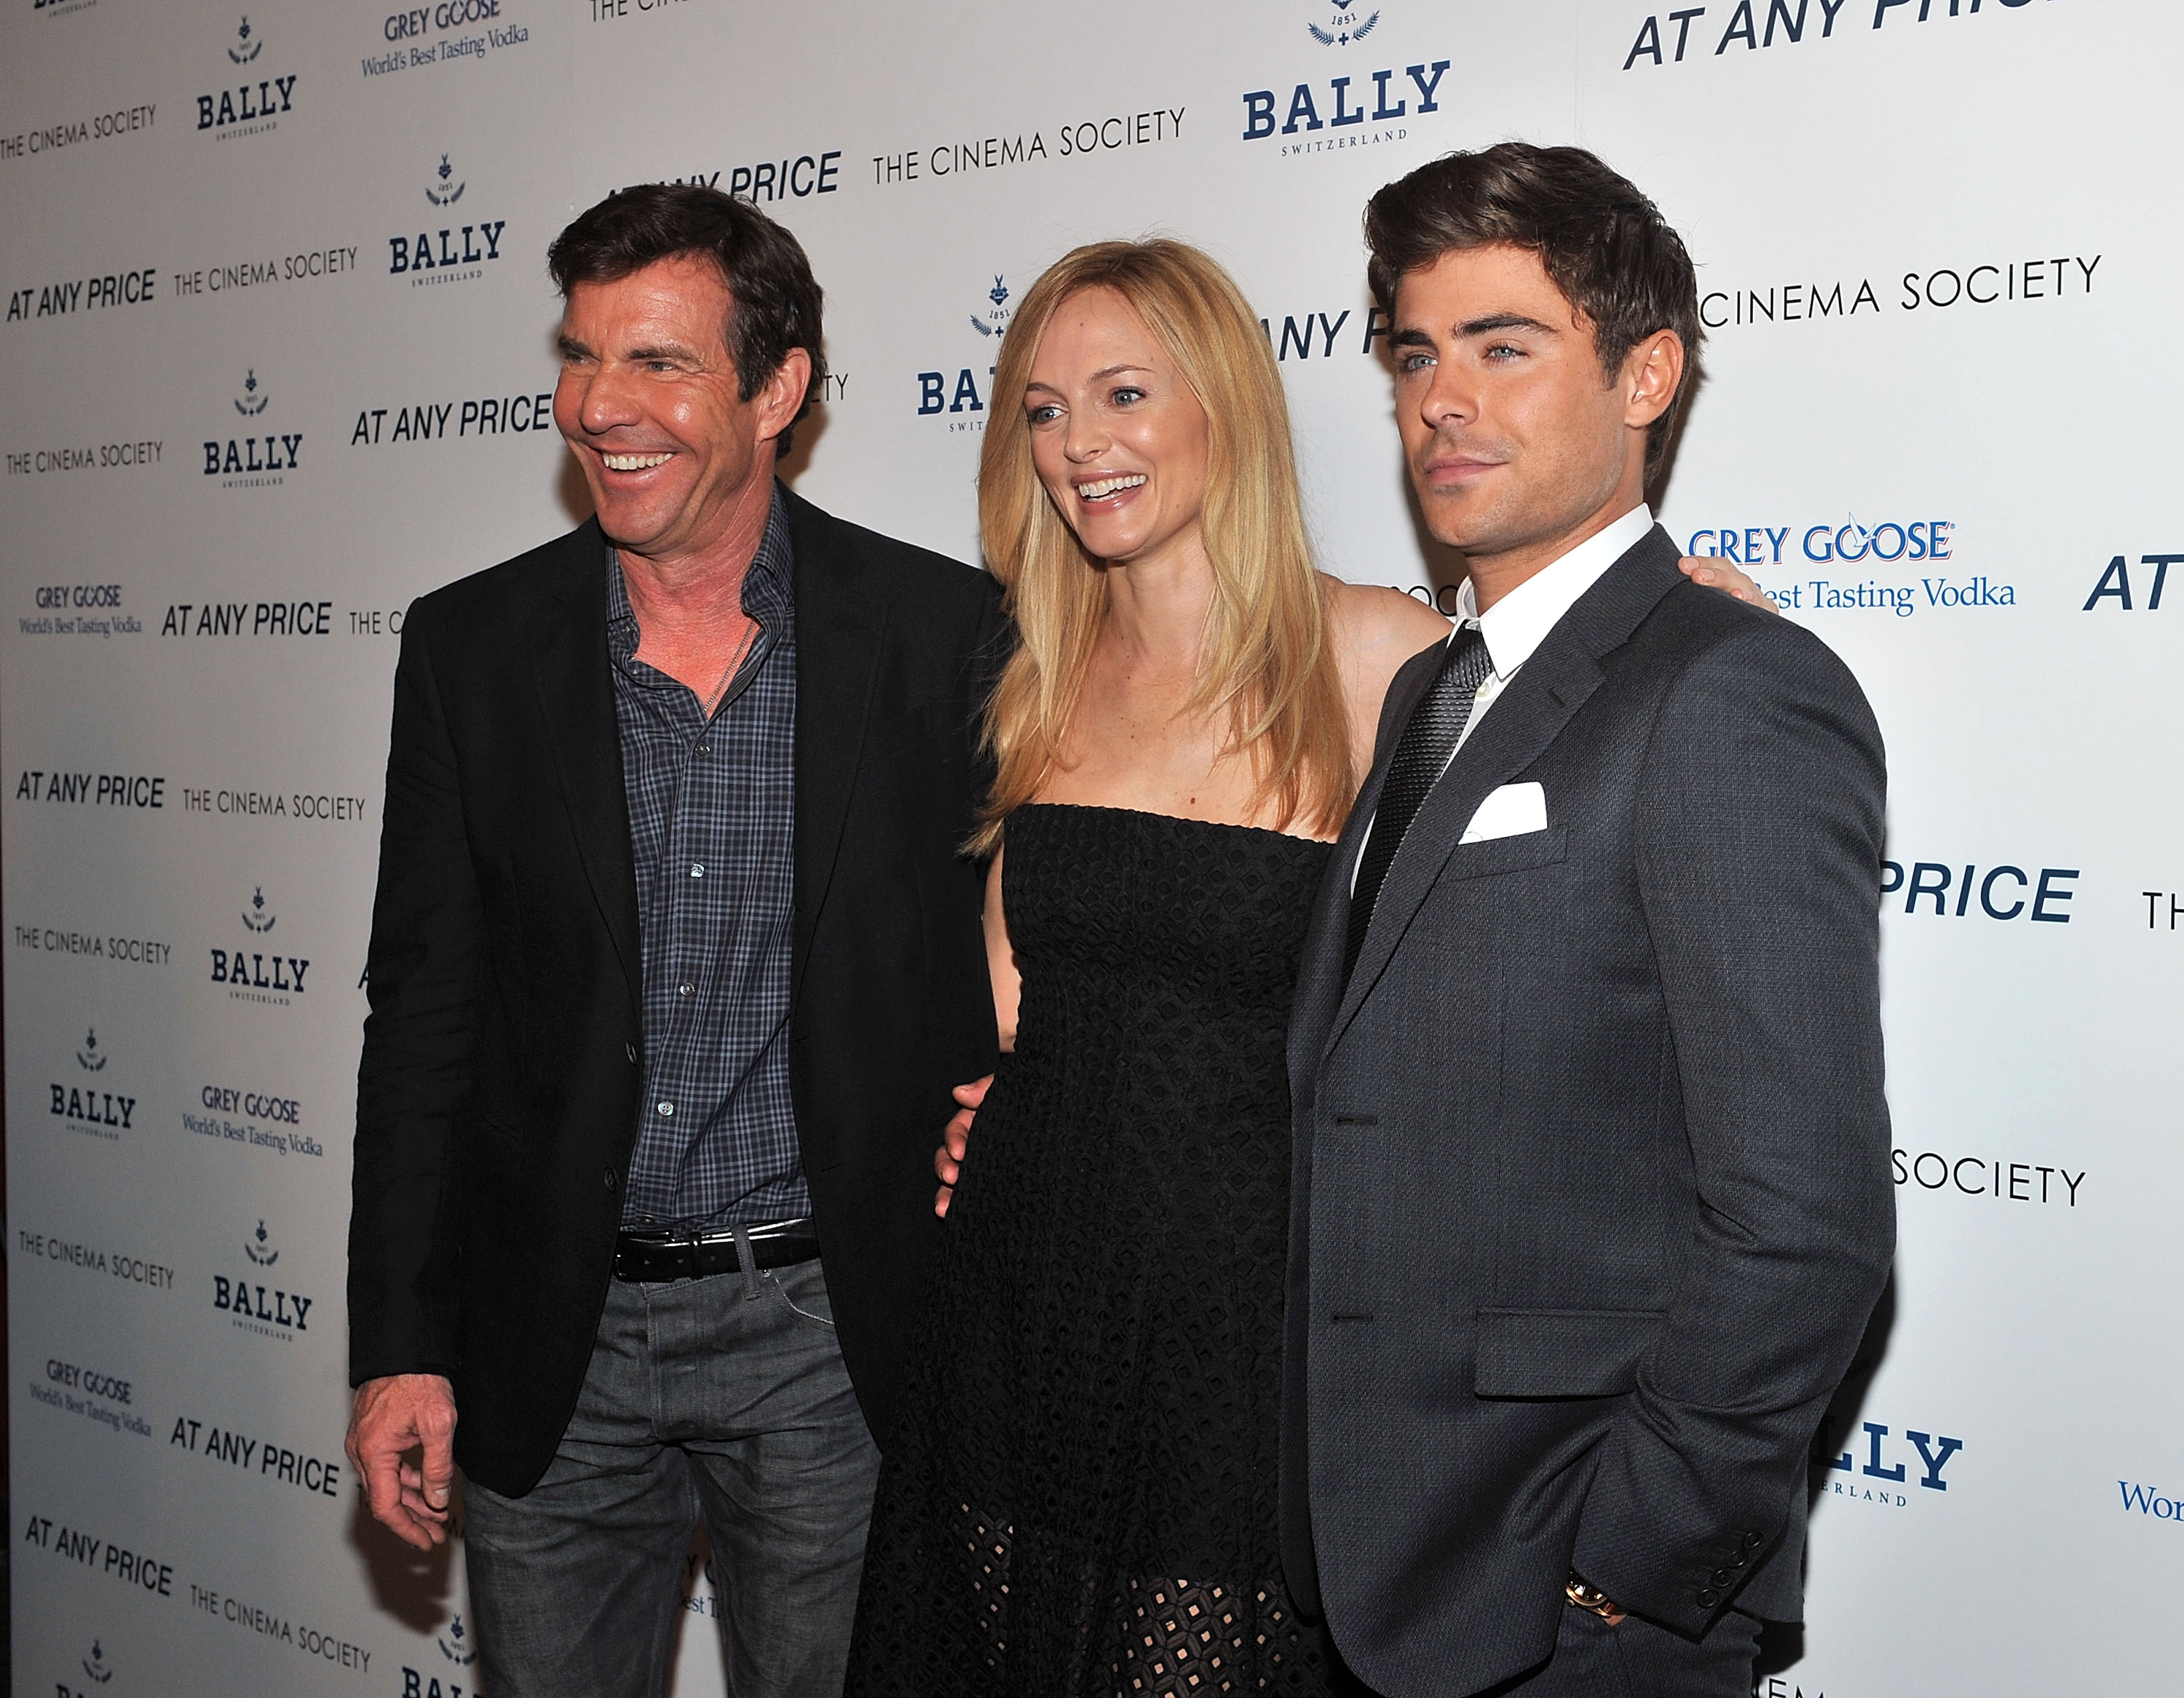 Dennis Quaid, Heather Graham, and Zac Efron got together for the premiere of At Any Price.